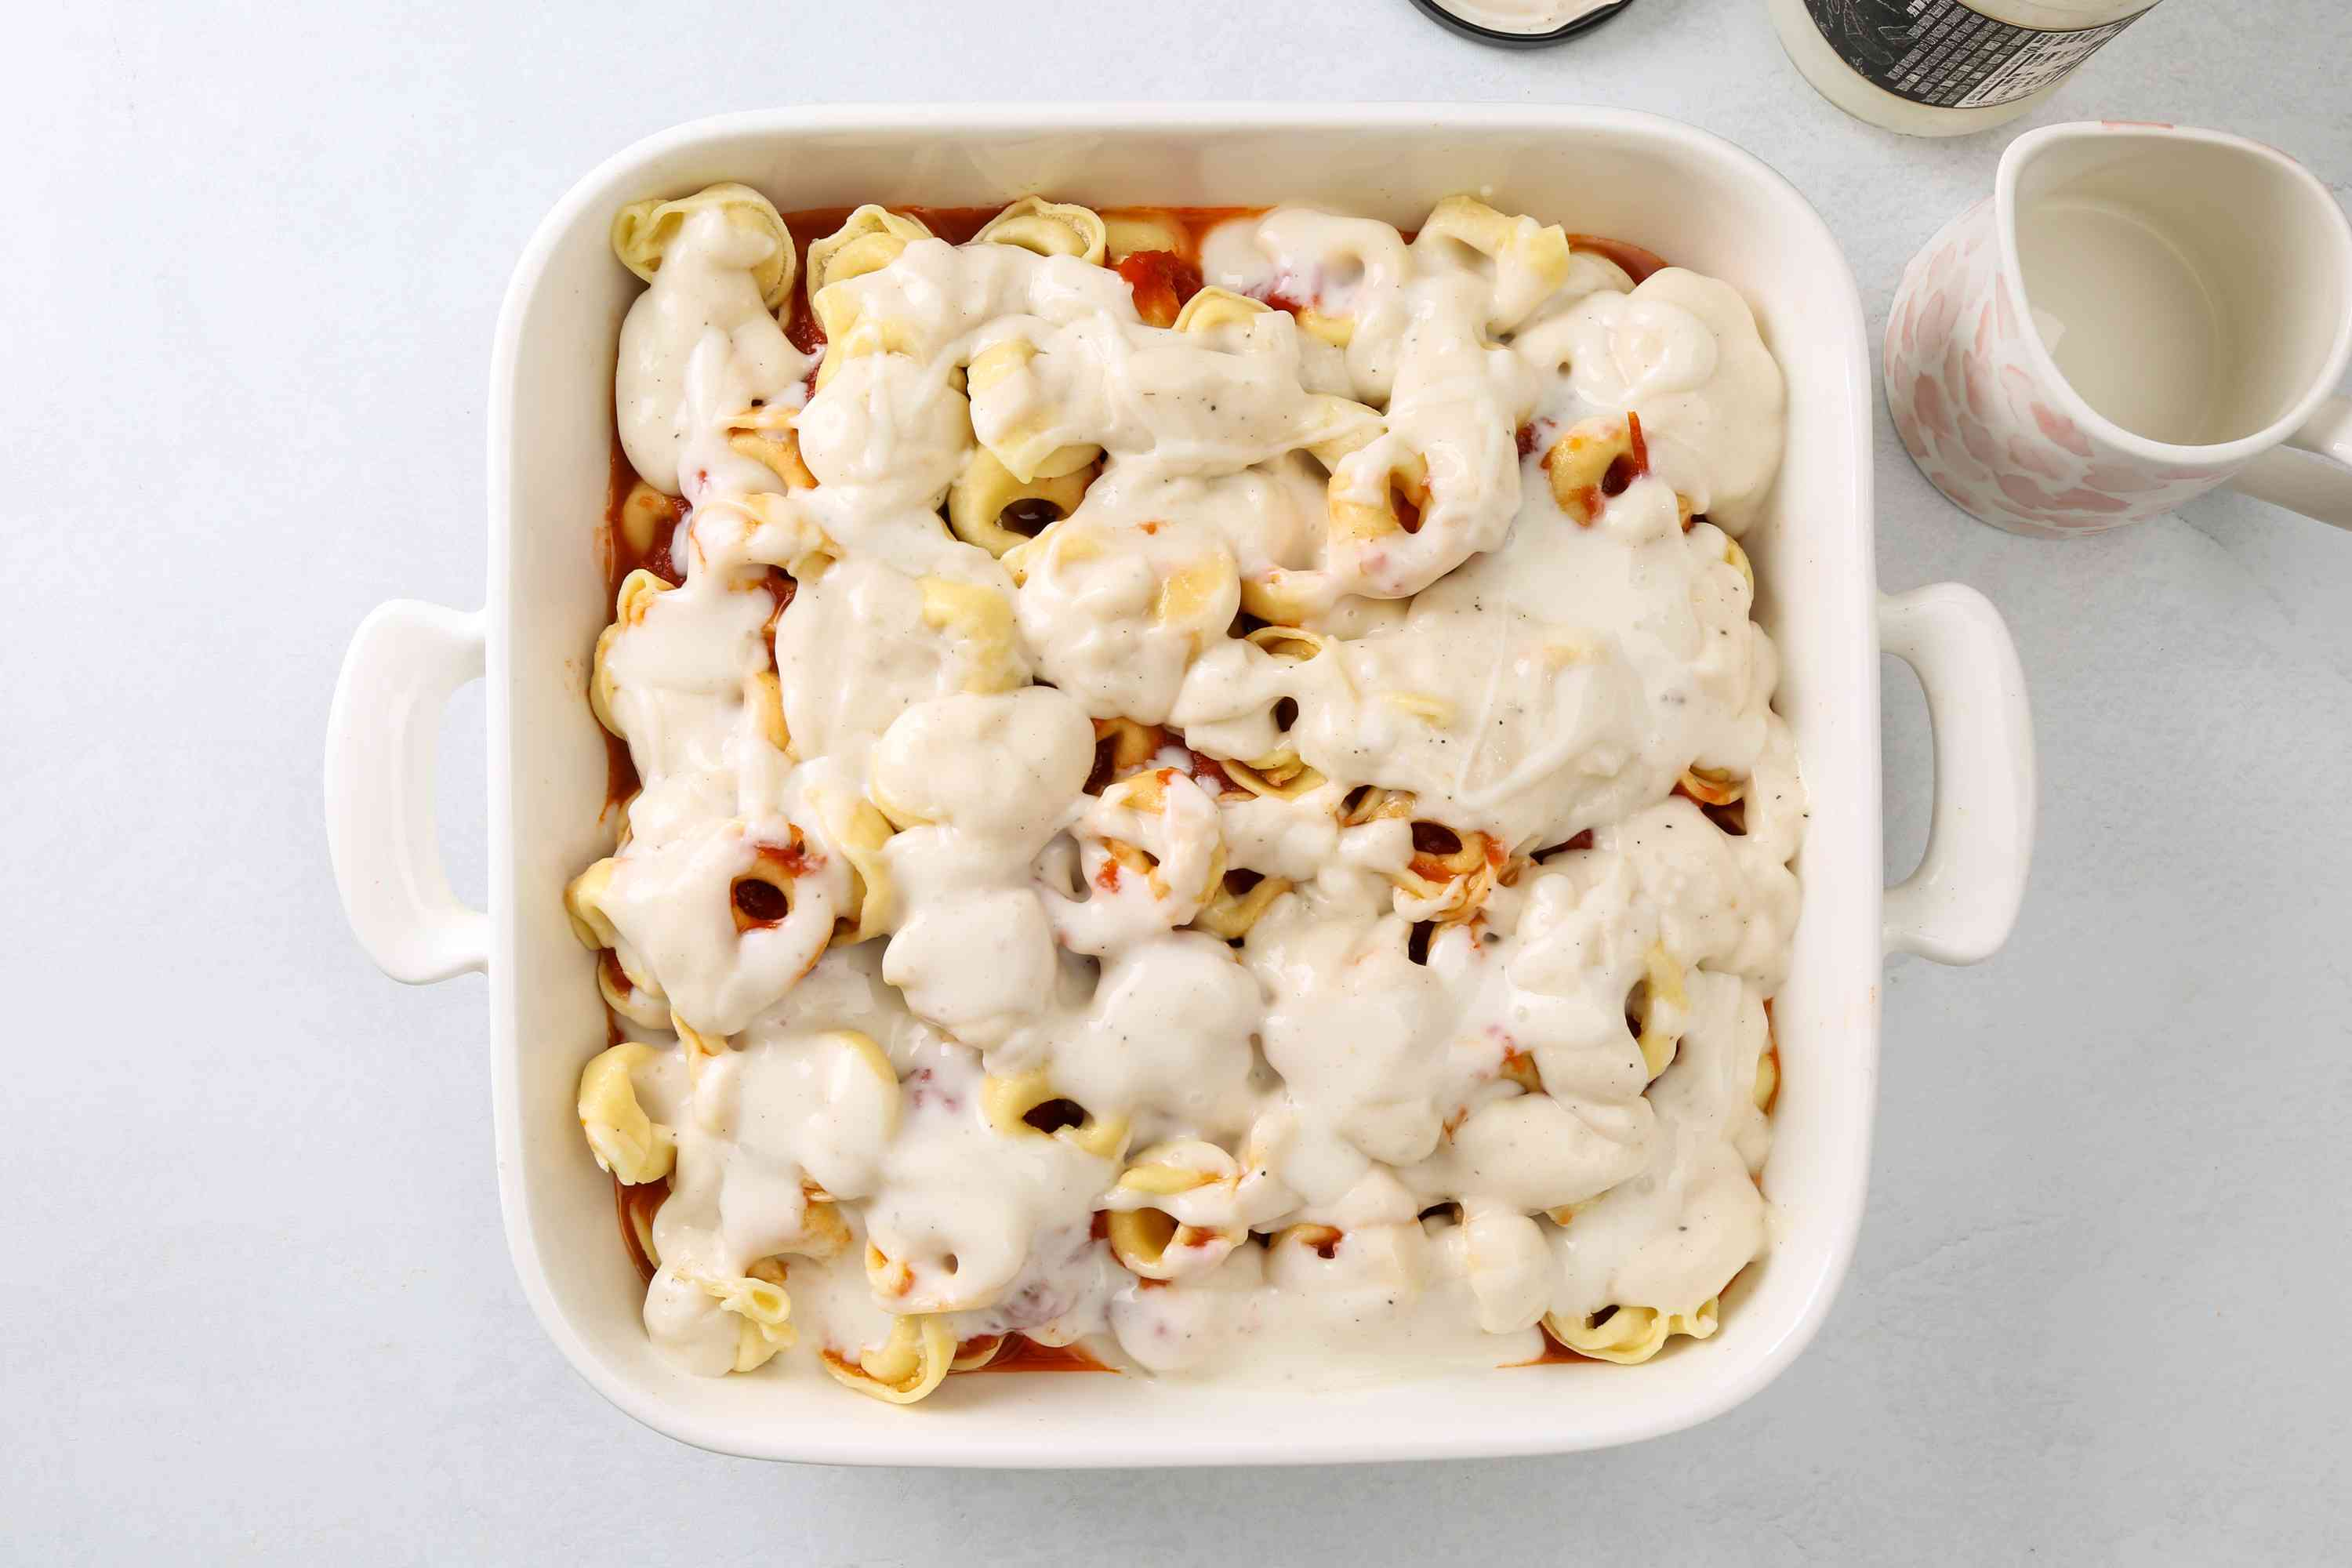 Alfredo sauce on top of the tortellini mixture in the baking dish